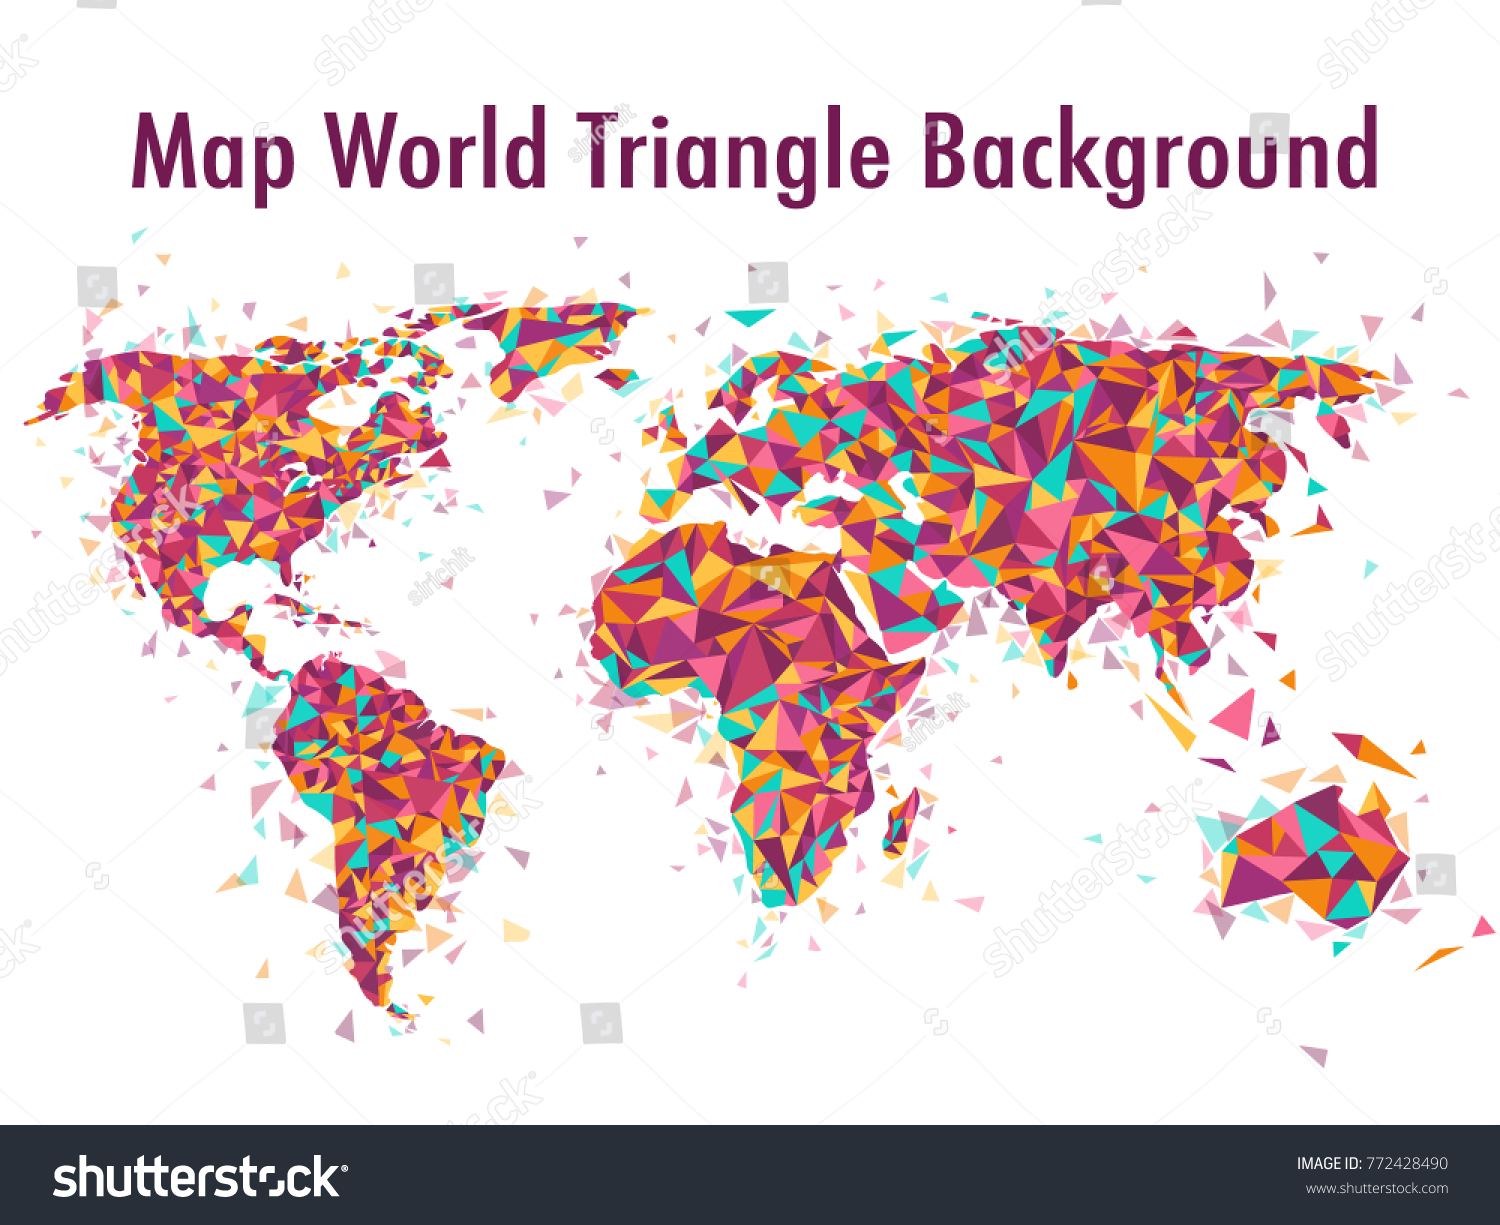 Abstract world map background polygonal triangle stock vector hd abstract world map background polygonal triangle colourful vector illustration eps 10 gumiabroncs Gallery